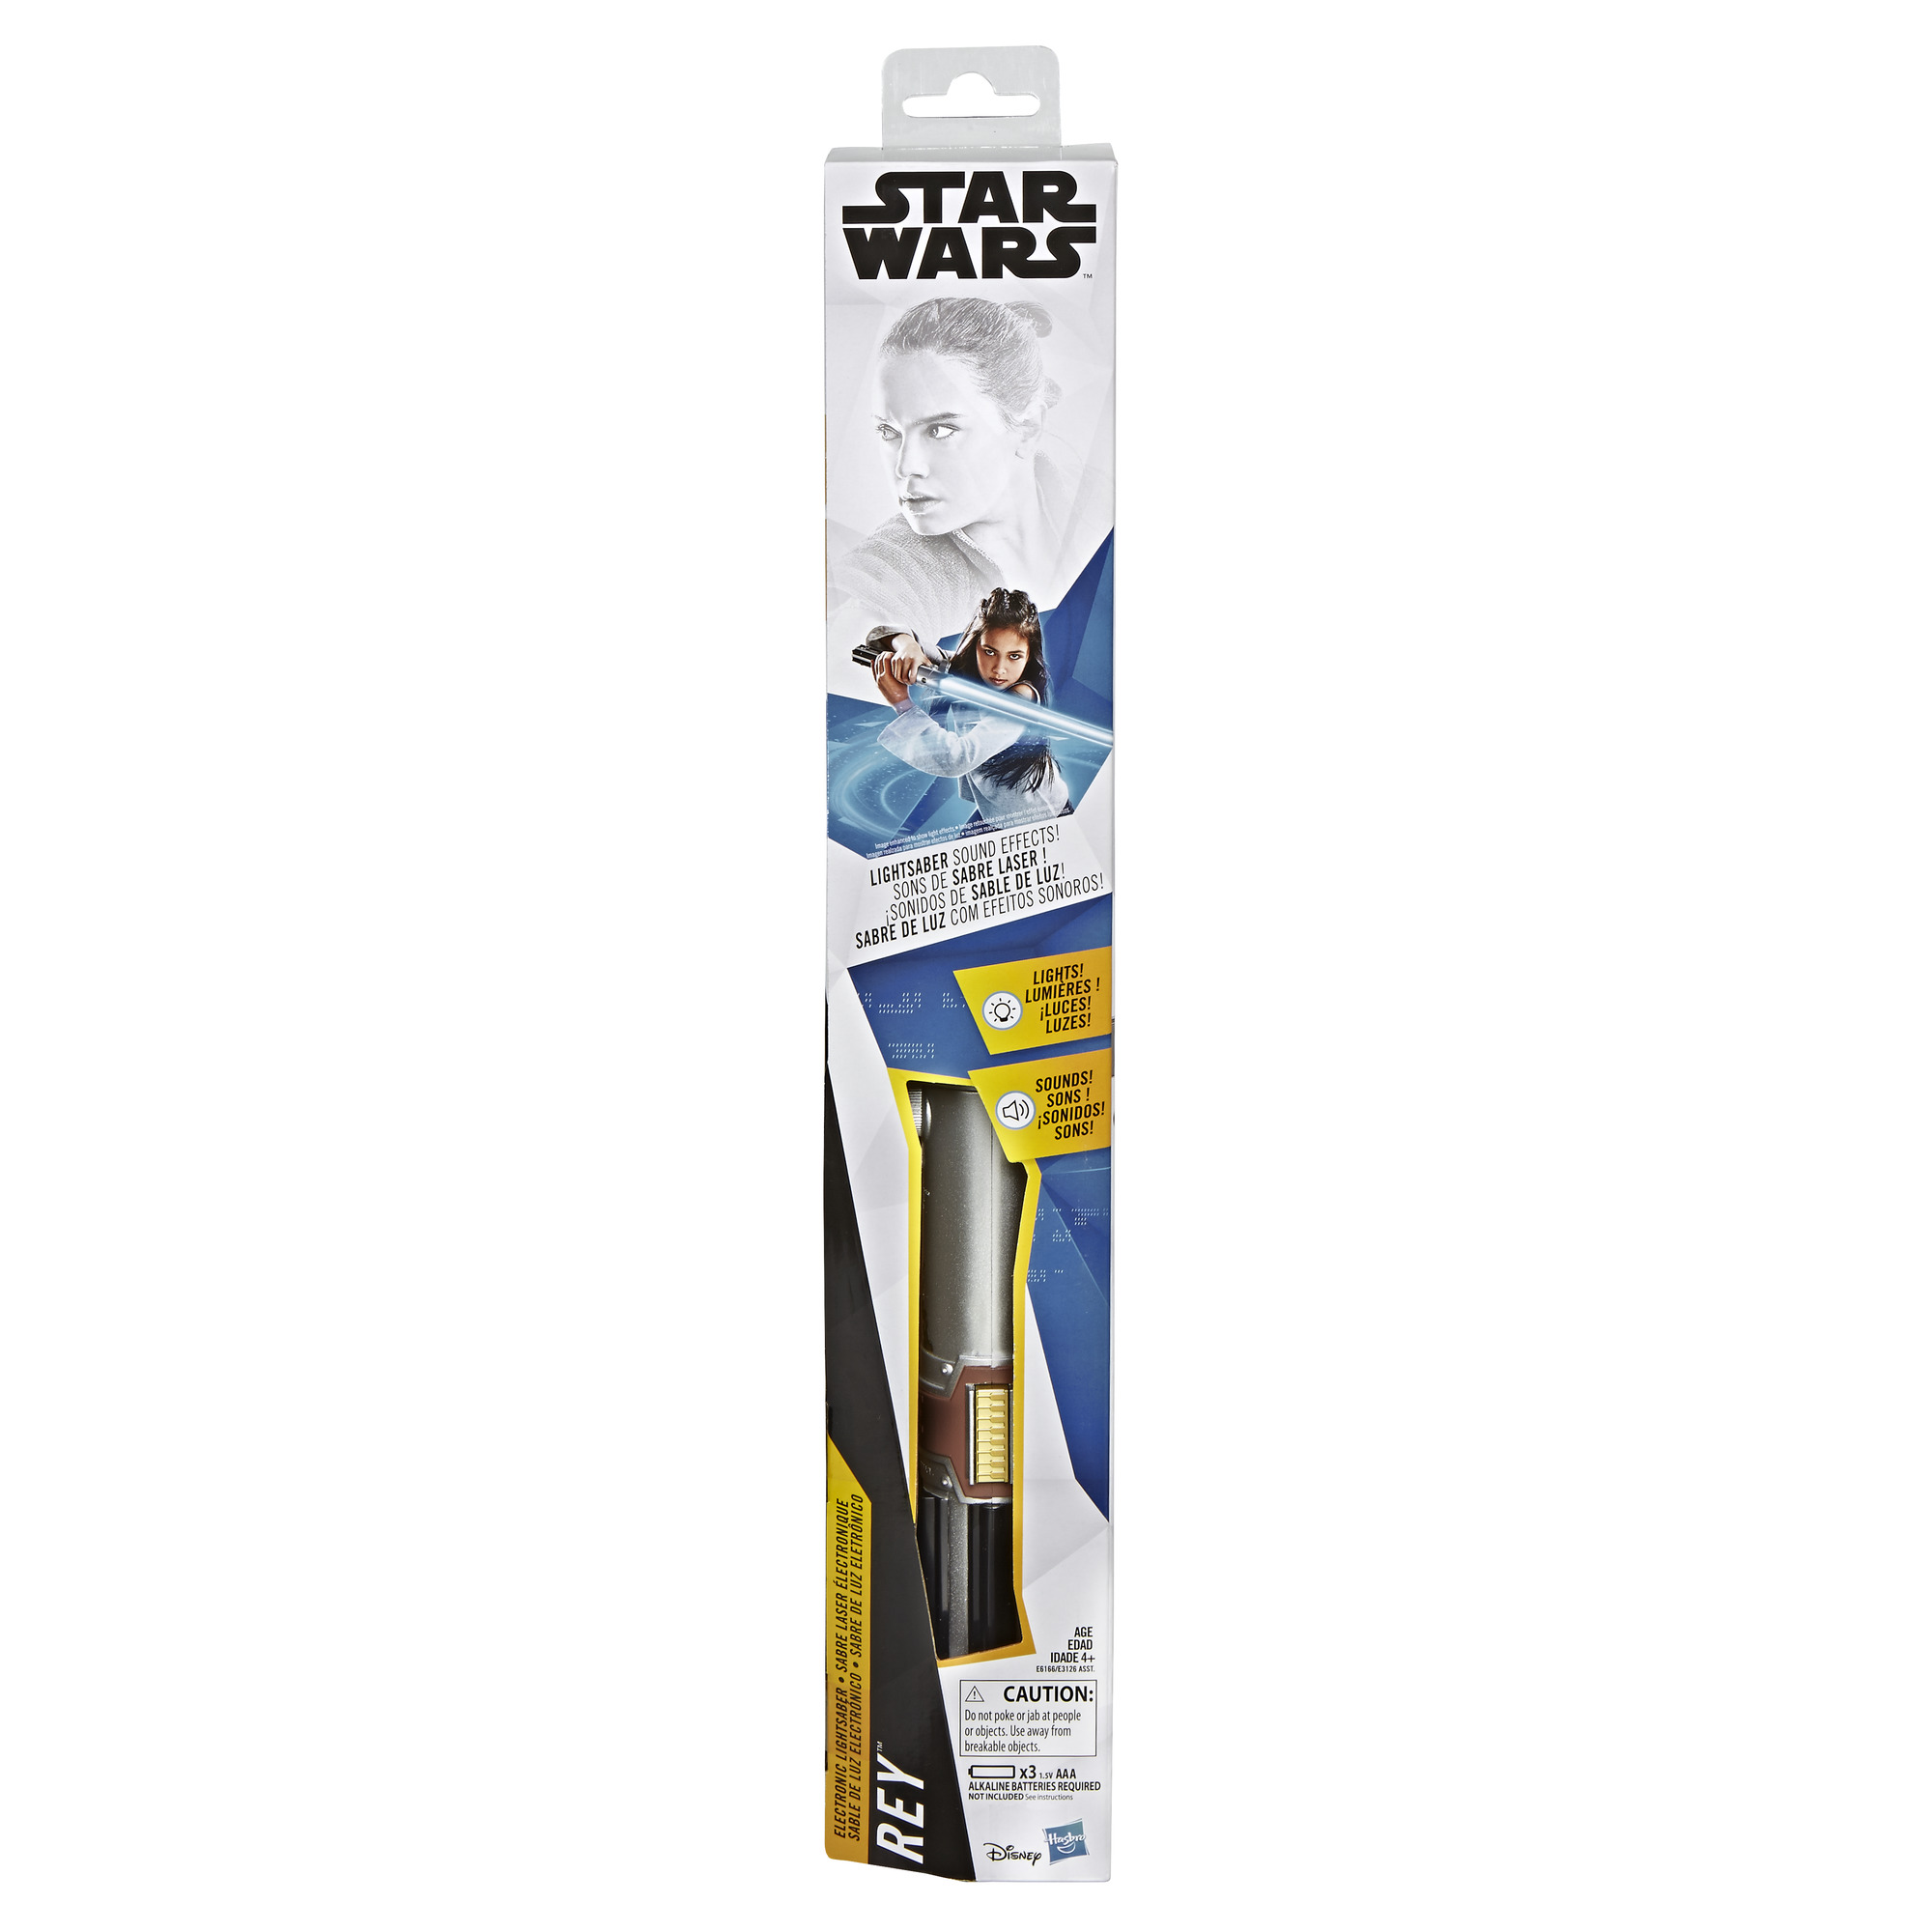 TROS Rey Electronic Lightsaber Toy 1